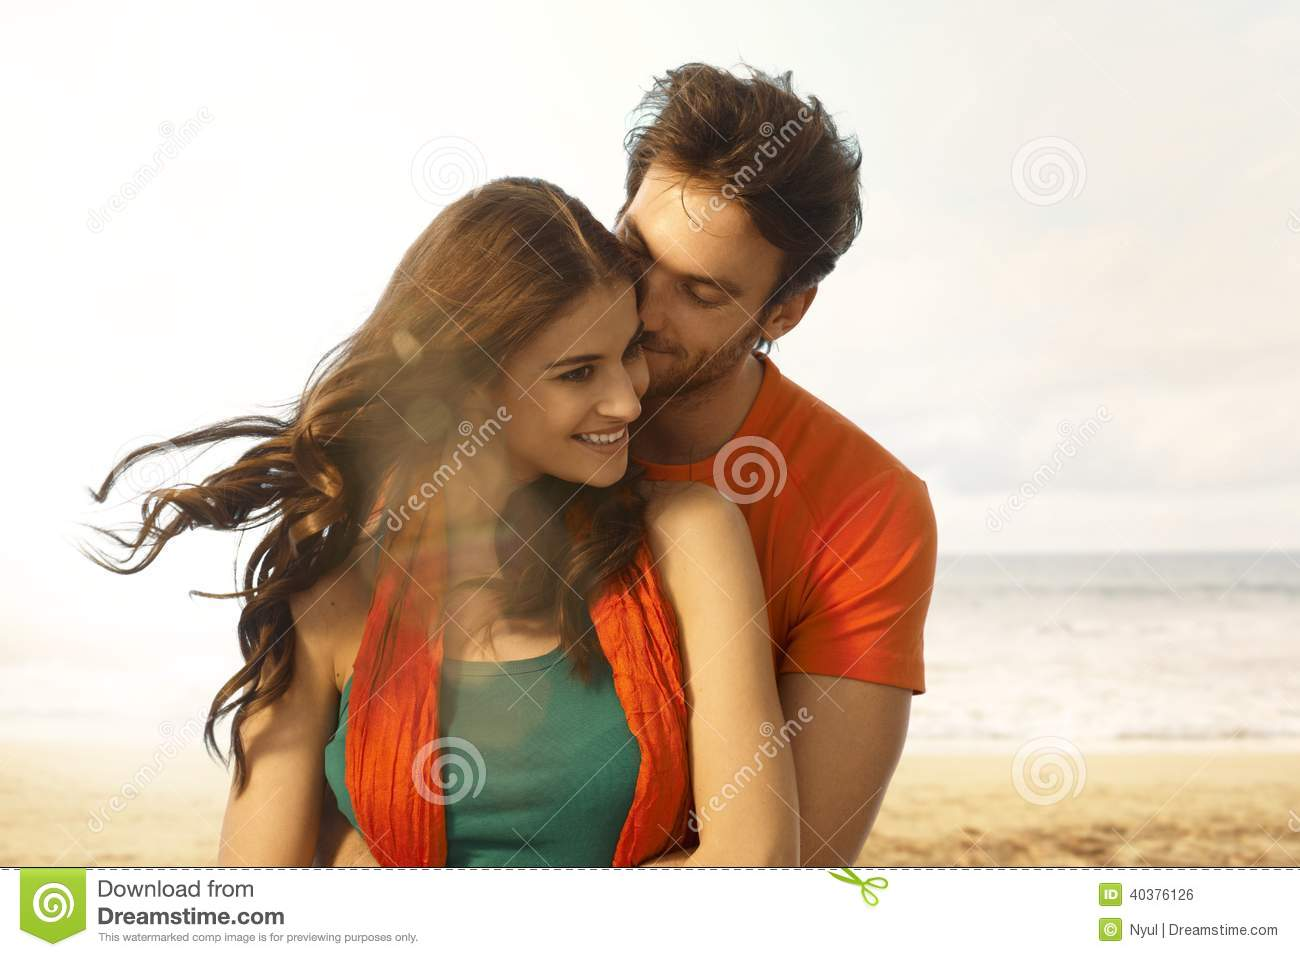 Attractive young woman getting a kiss at beach